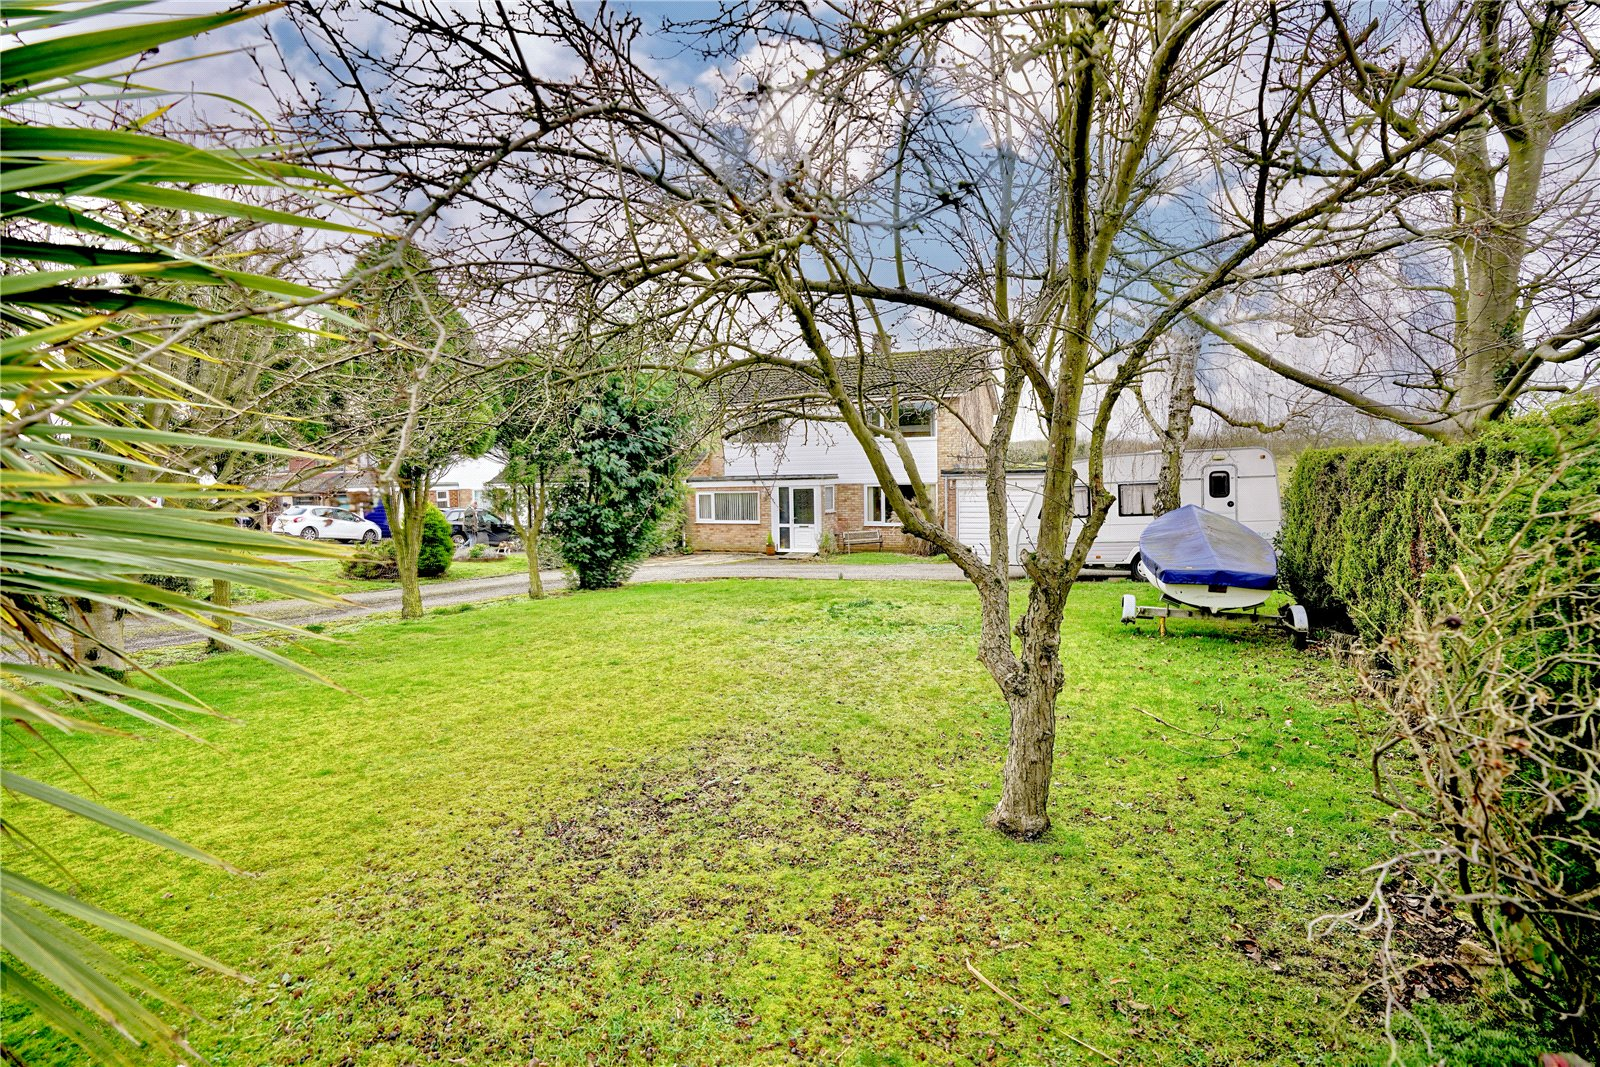 3 bed house for sale in Green Acres, Gamlingay  - Property Image 3